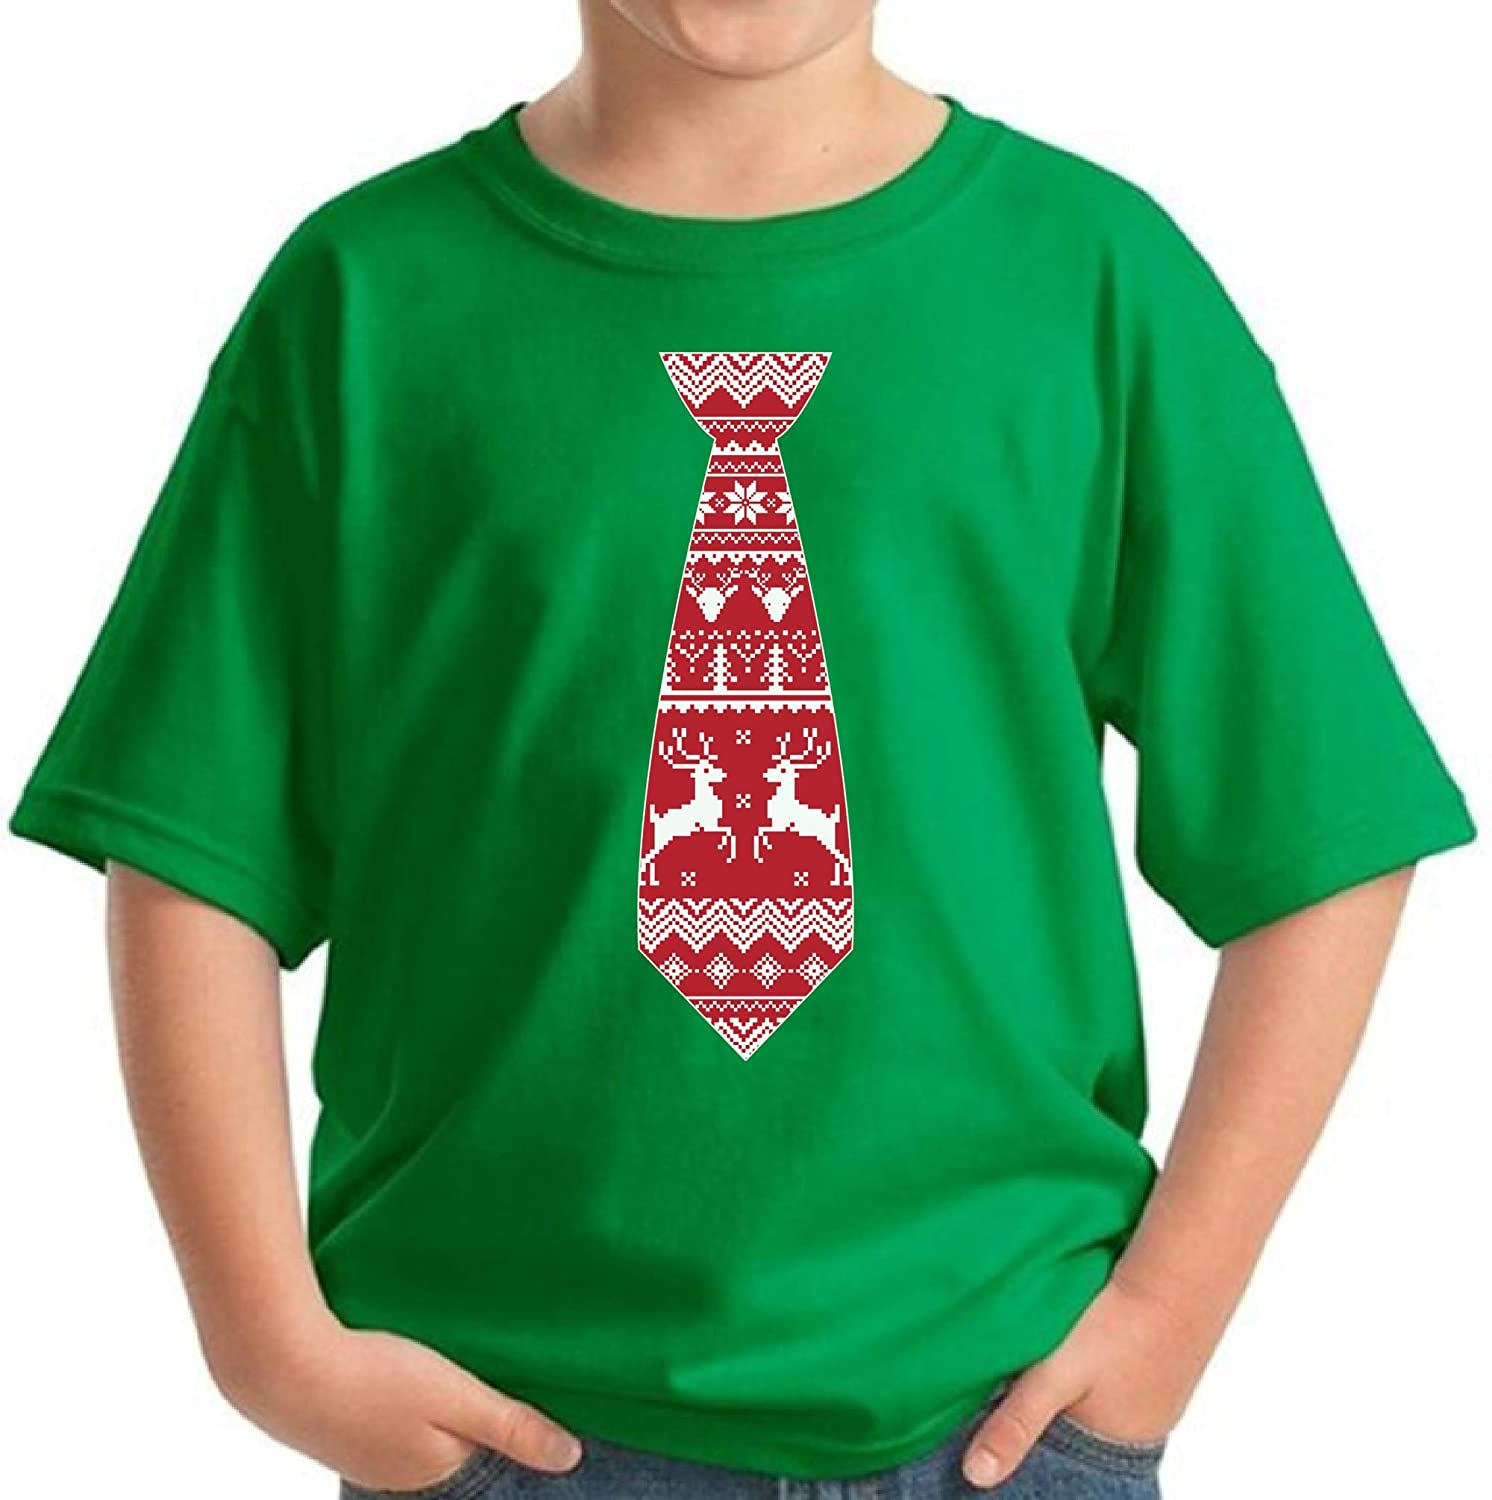 Pekatees Christmas Youth Shirt Xmas Shirt for Kids Cute Red Tie Shirt